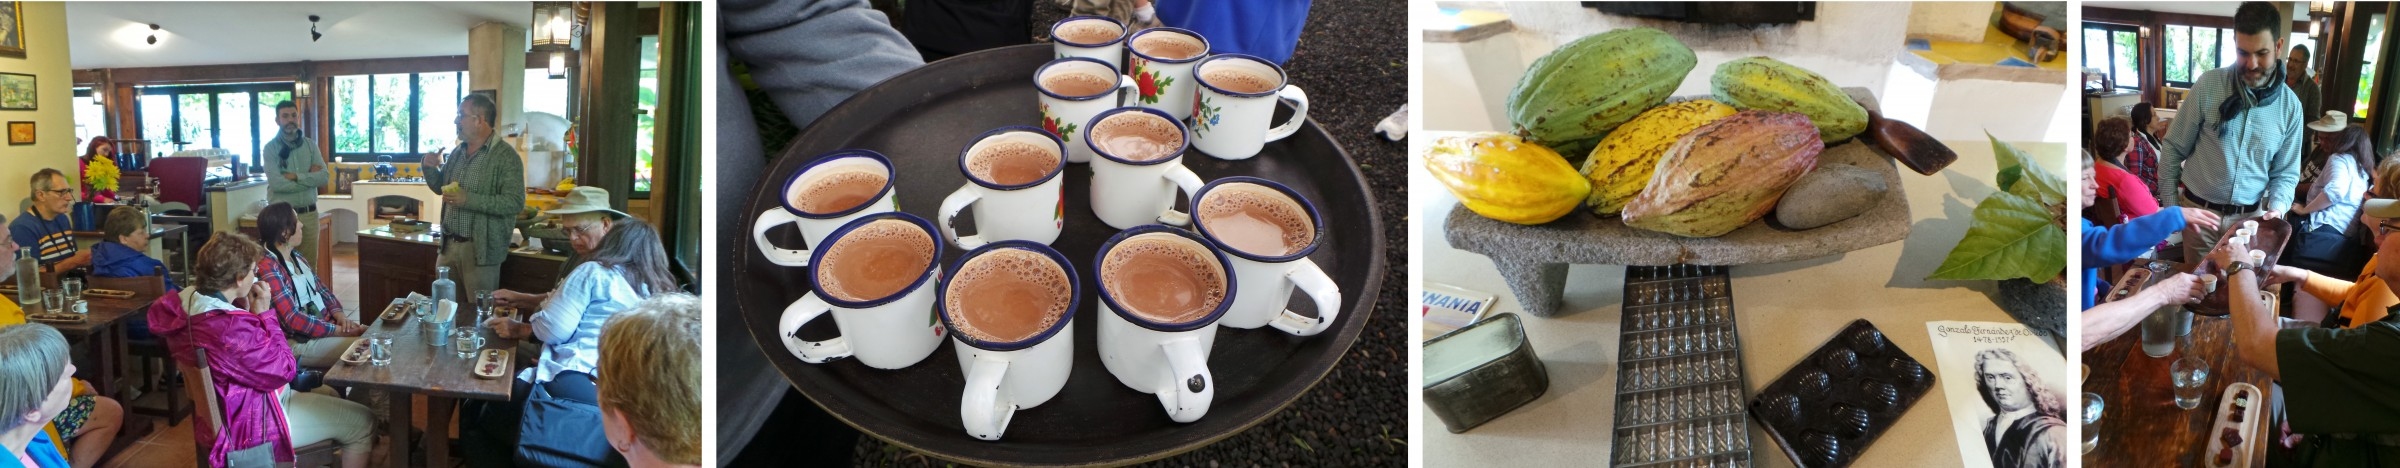 The group learning about chocolate (L); hot chocolate (LC) and cacao pods (RC) and George passing out samples (R).